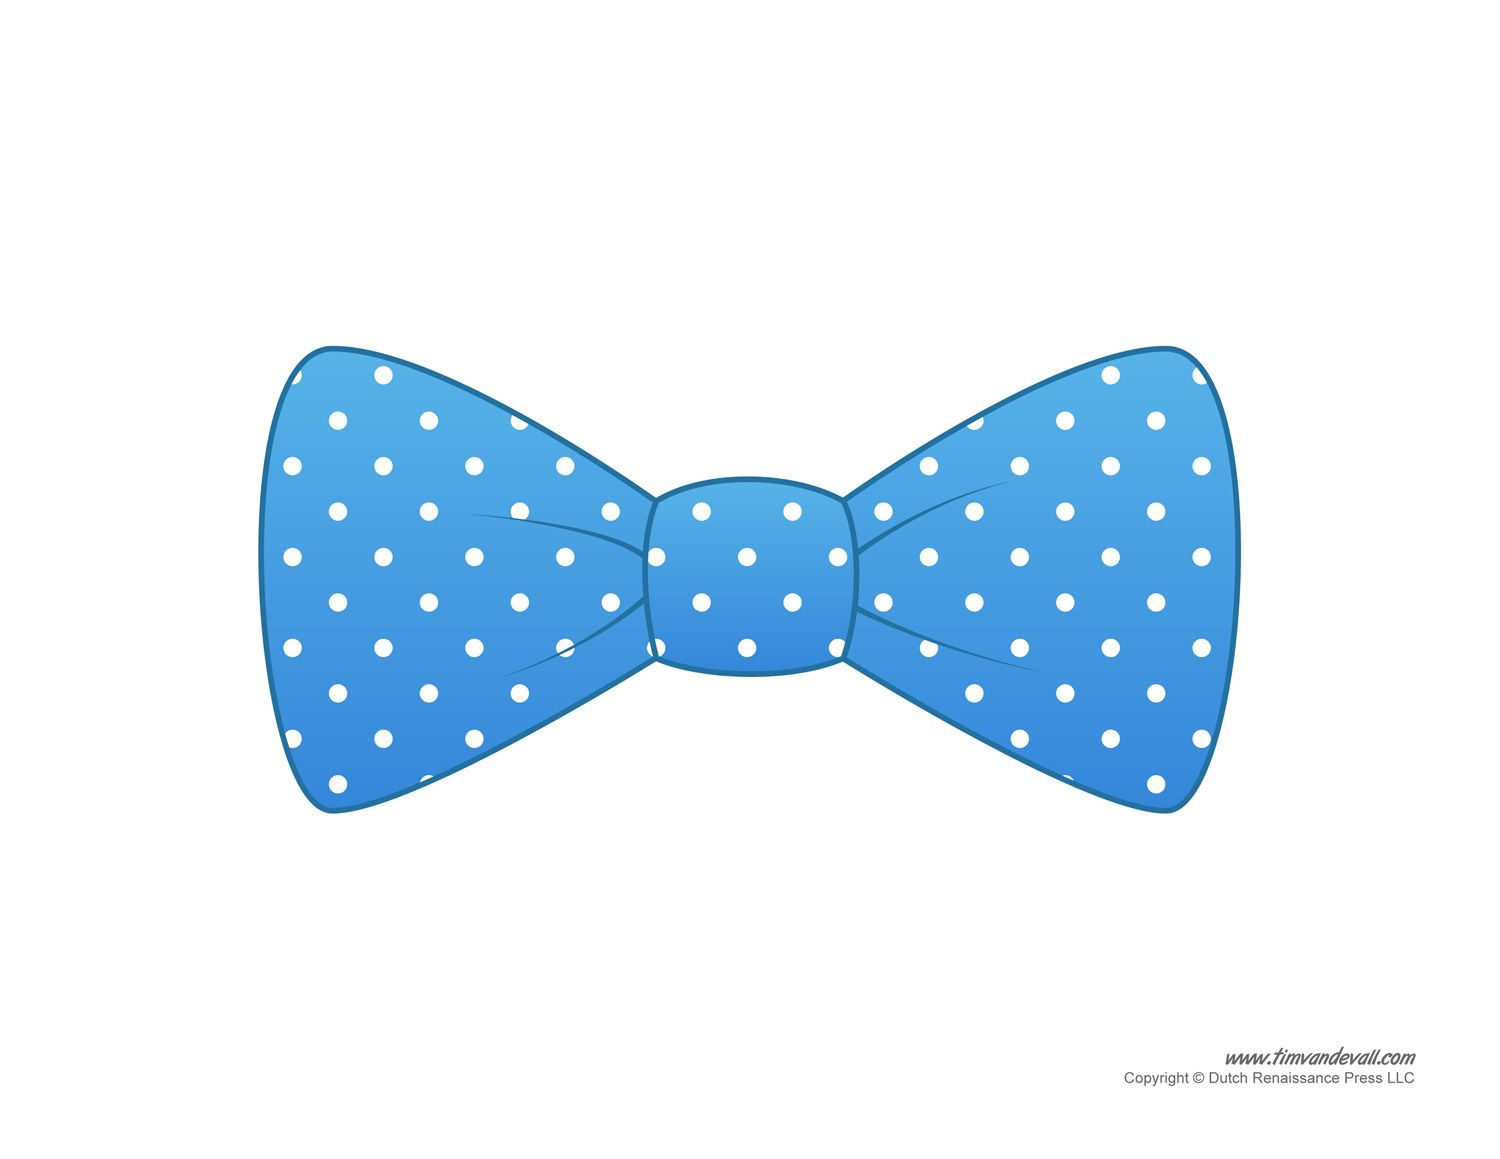 image about Free Bow Tie Template Printable named Bow Tie Clipart Toward Printable SVG Information Bow tie template